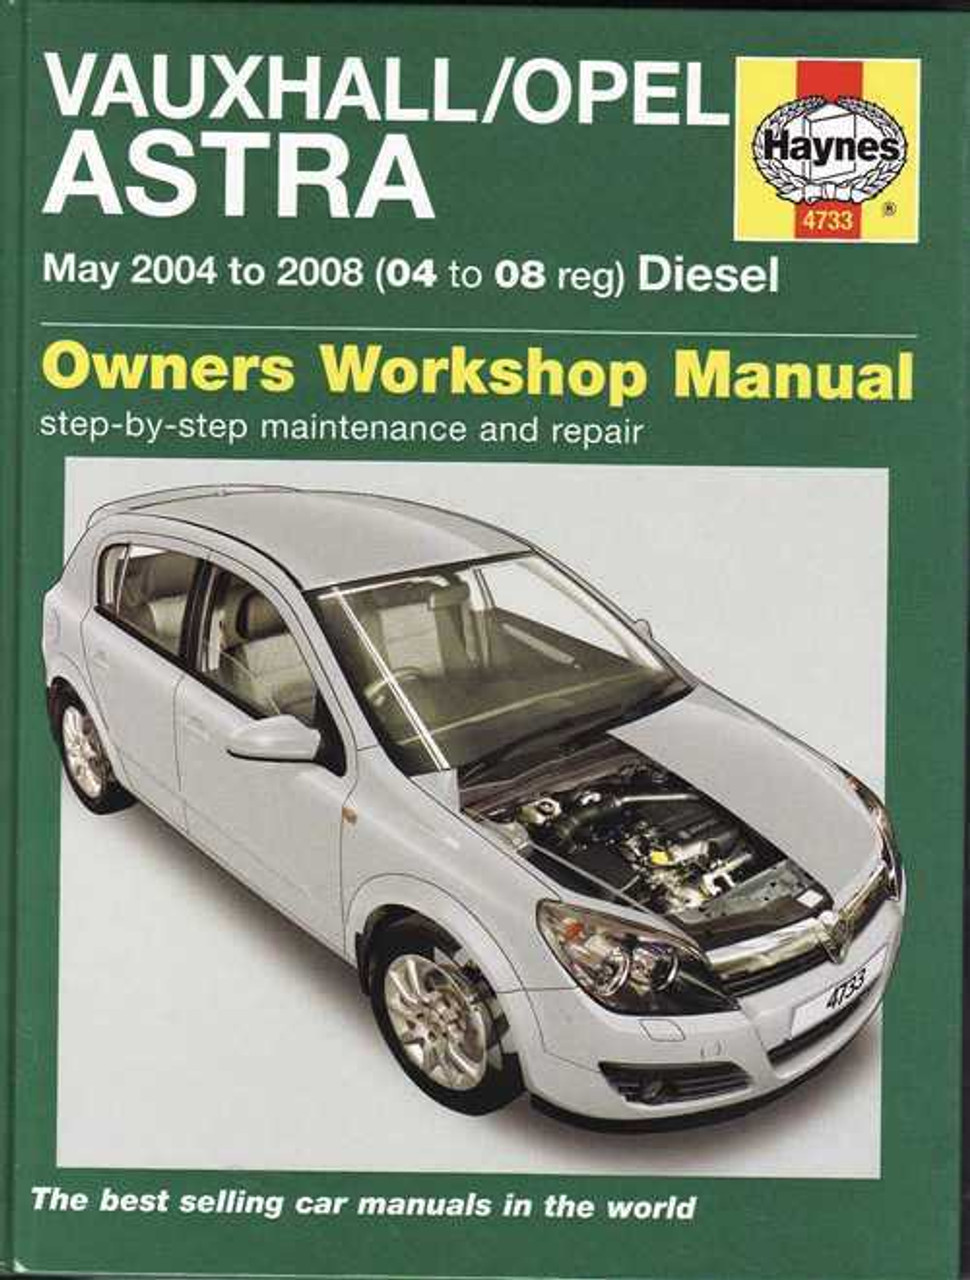 holden vauxhall opel astra ah 2004 2008 diesel workshop manual rh automotobookshop com au opel astra h 2008 service manual opel astra h owner's manual pdf